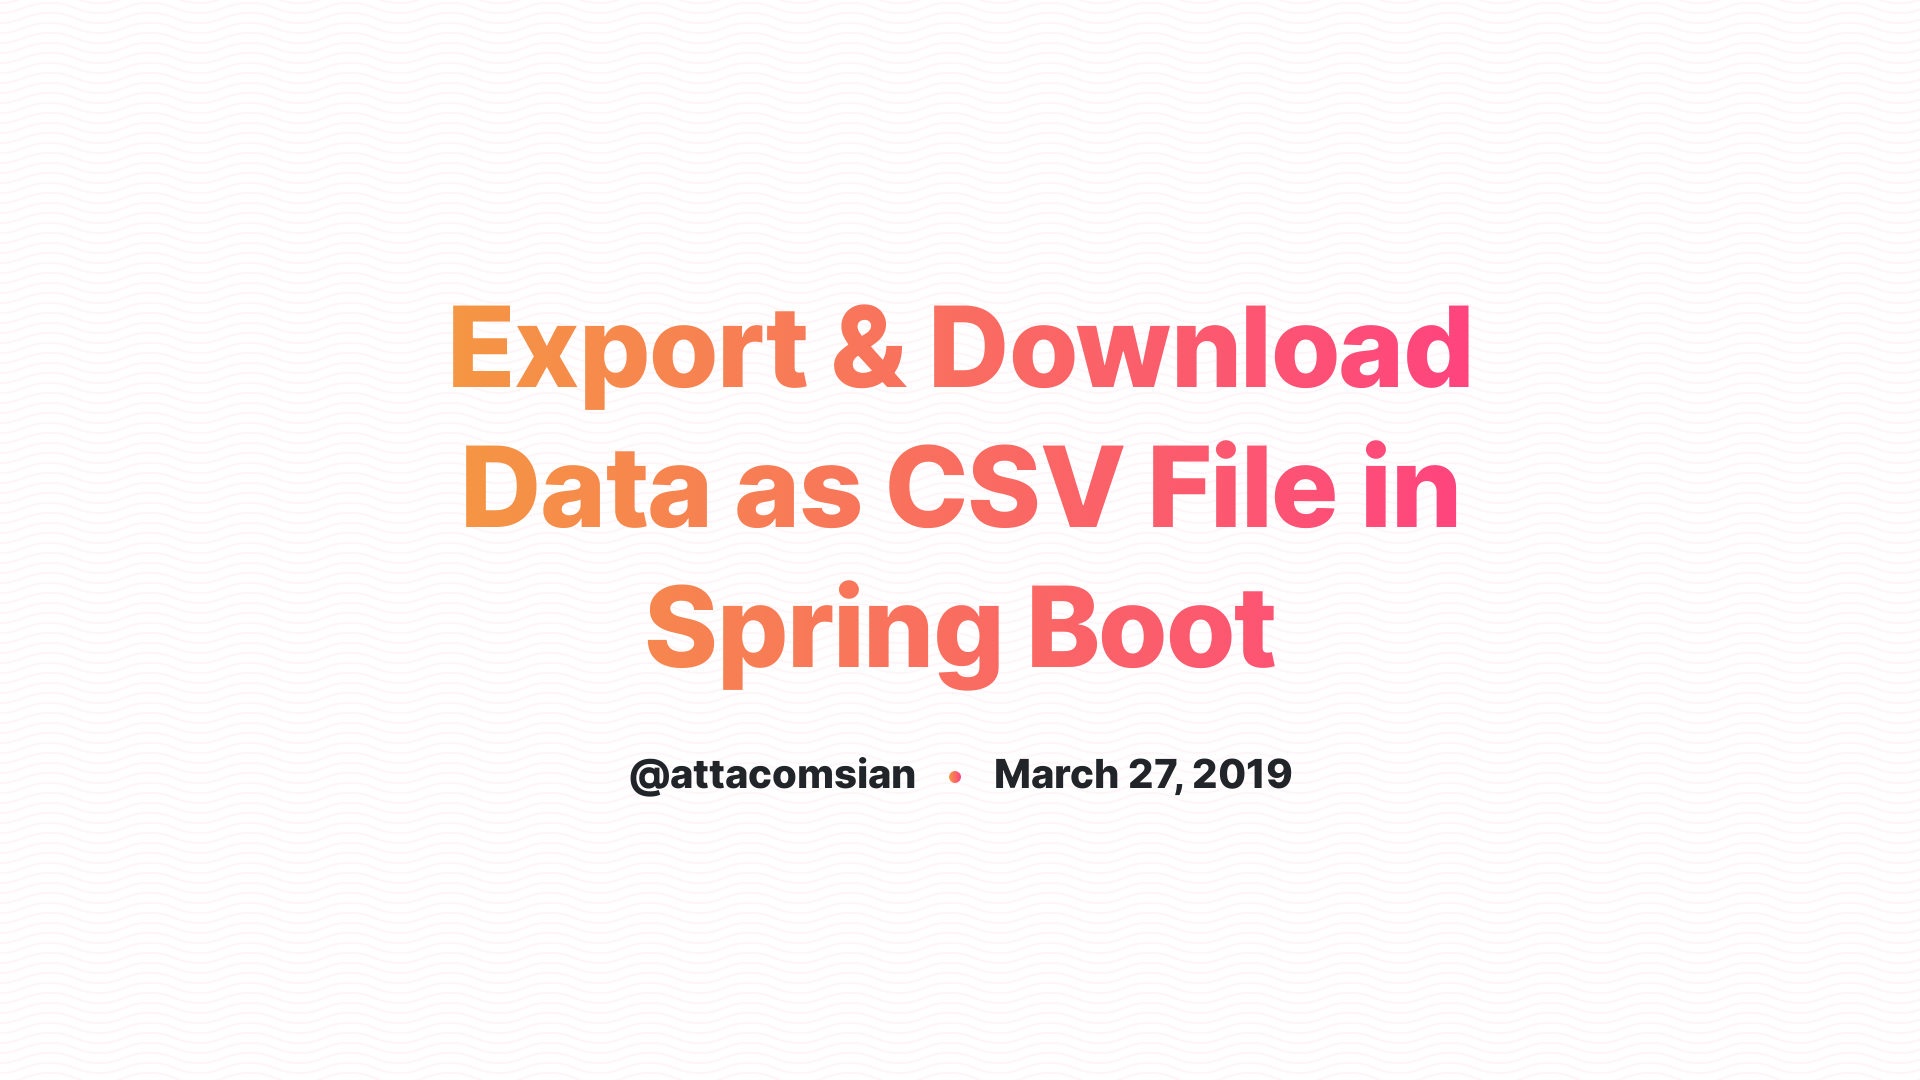 Export & Download Data as CSV File in Spring Boot